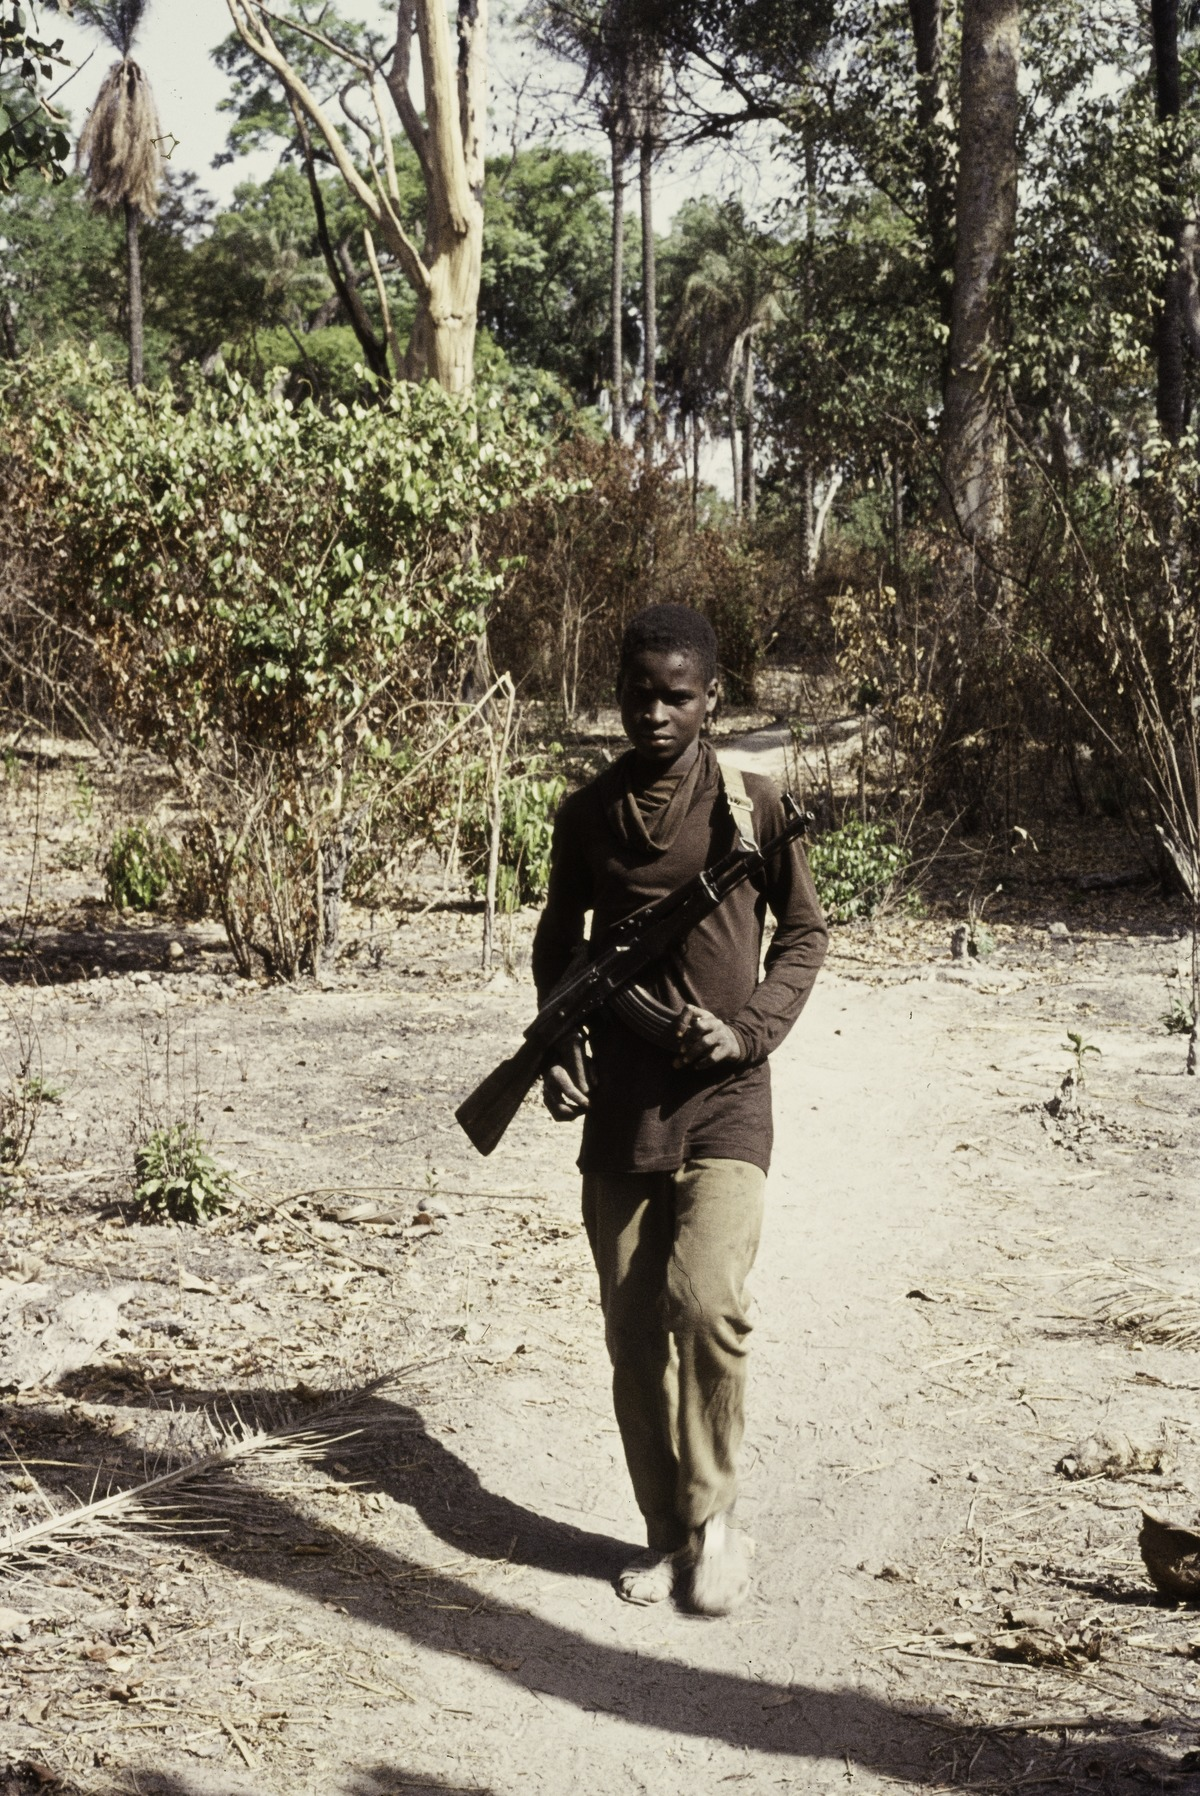 Child soldiers in Africa - Wikipedia